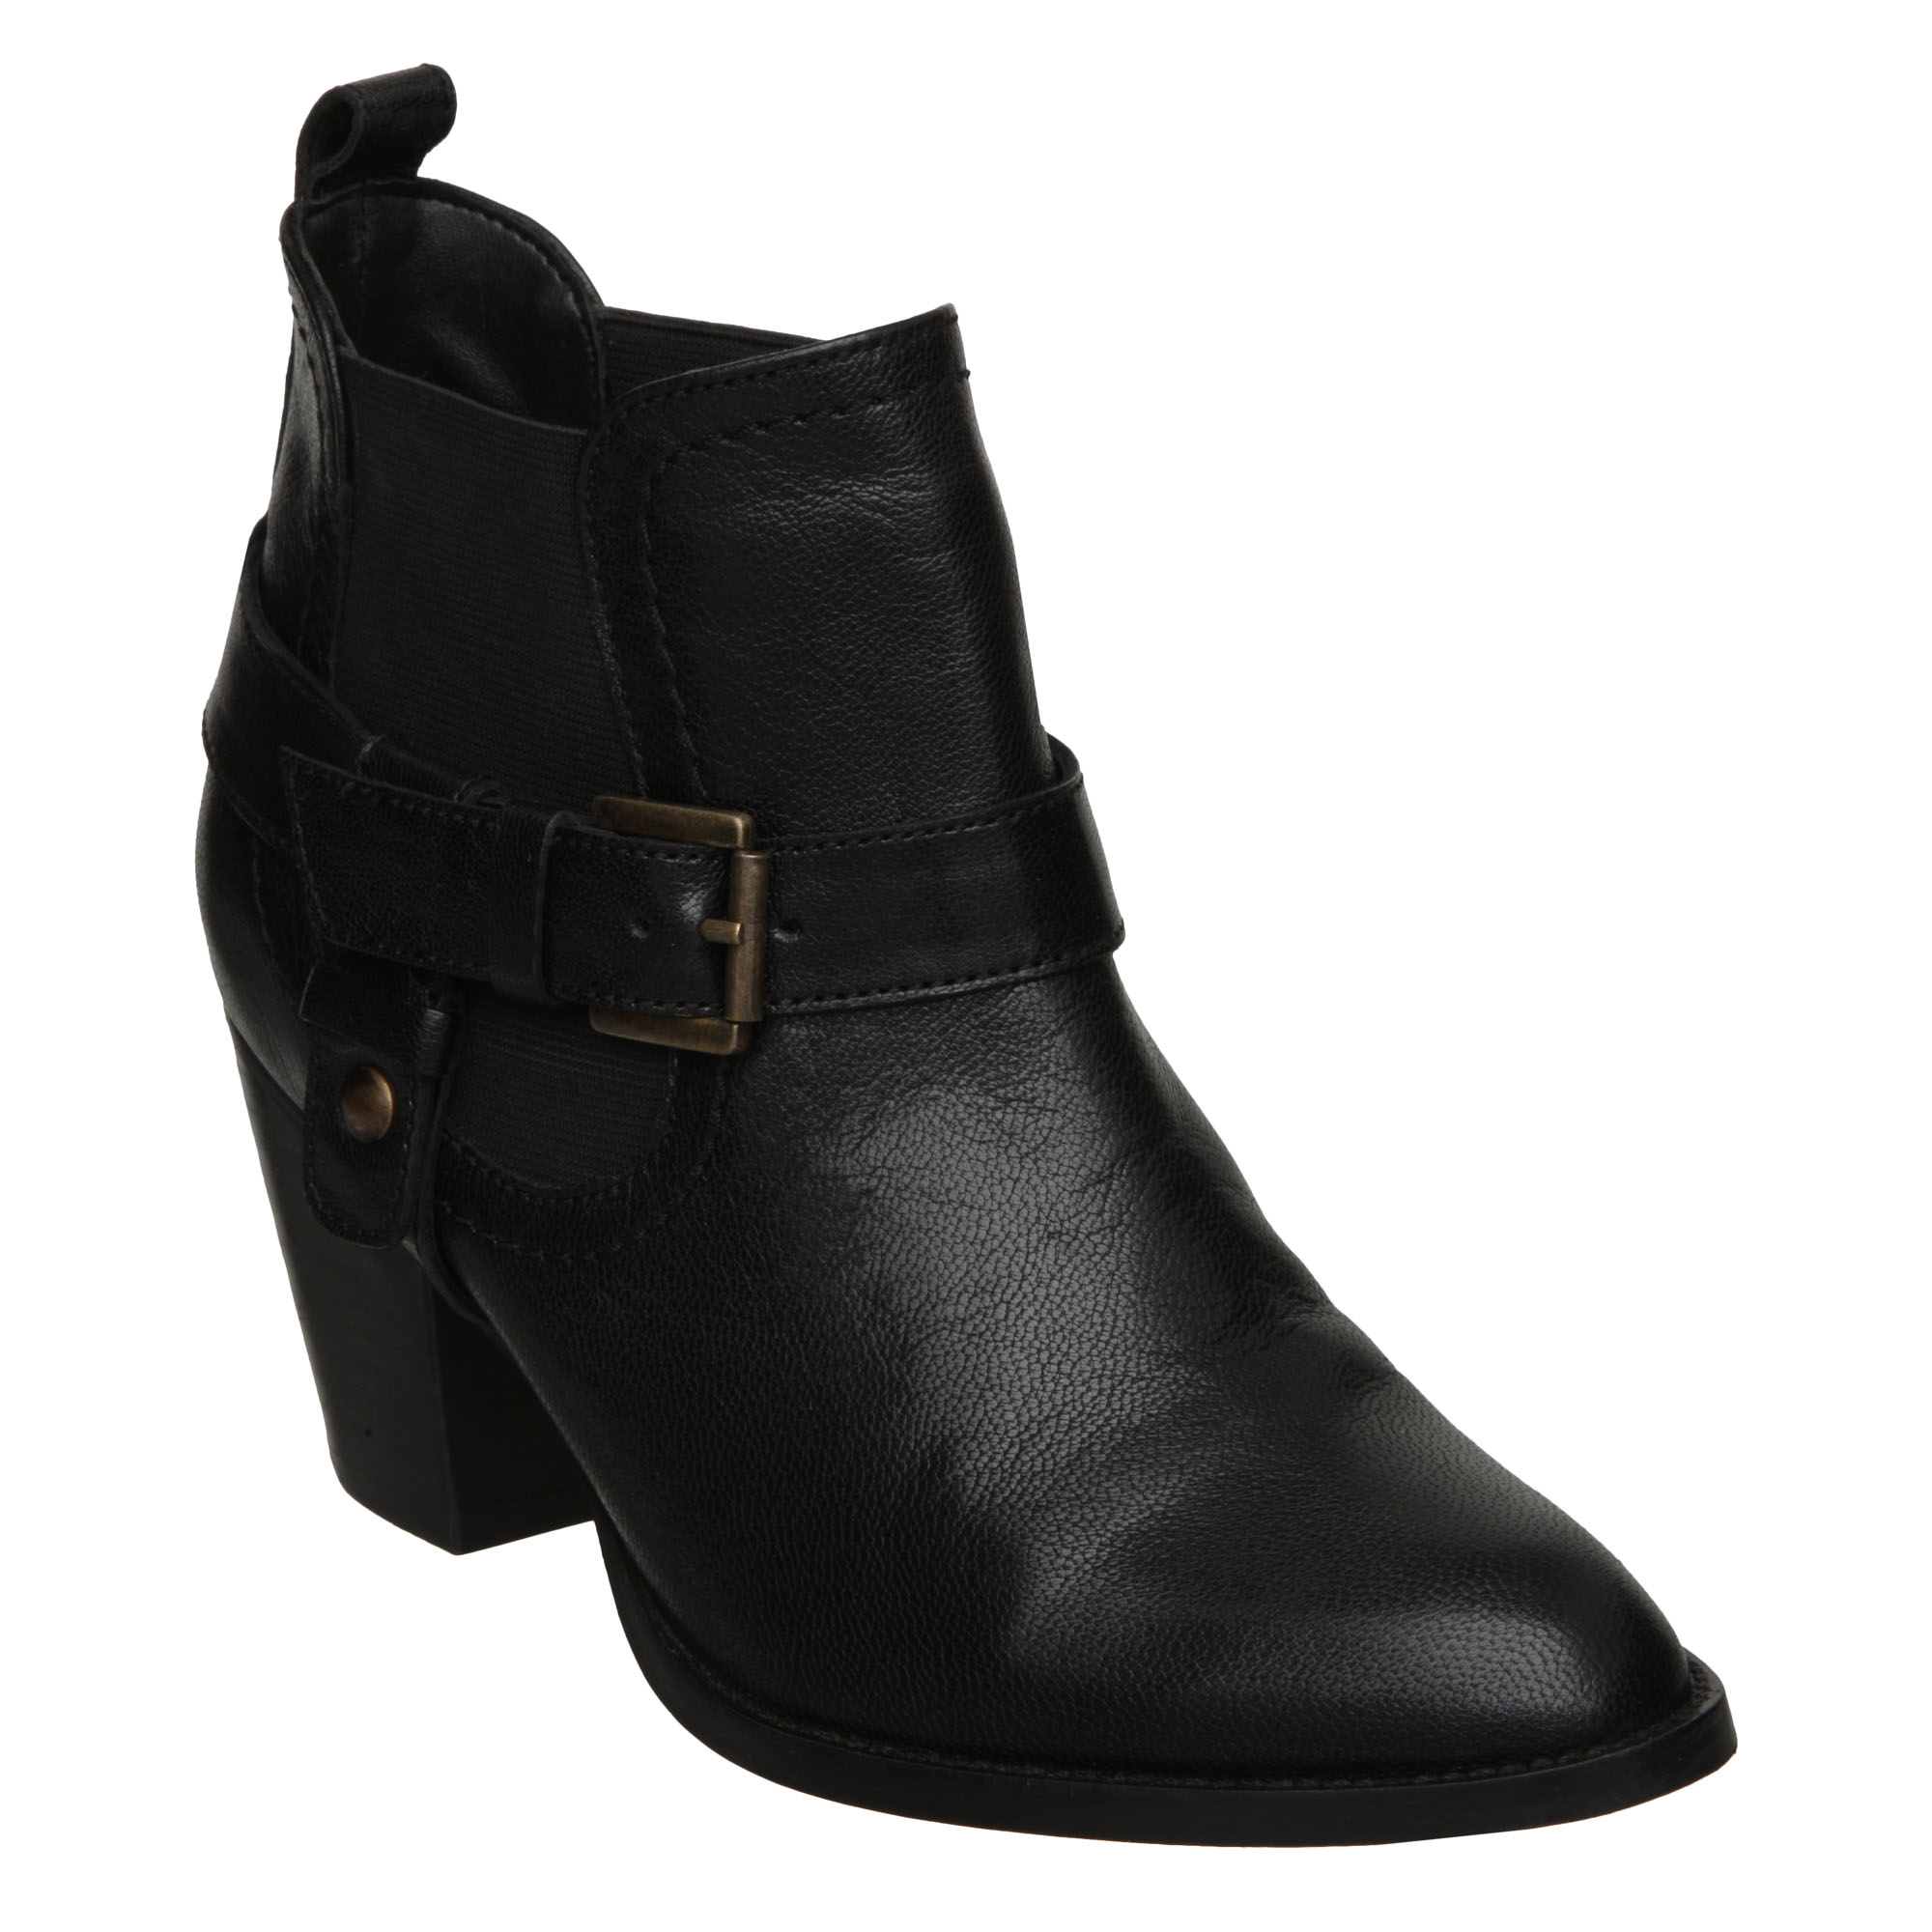 Ladies Ankle Boots FPVuVLfv